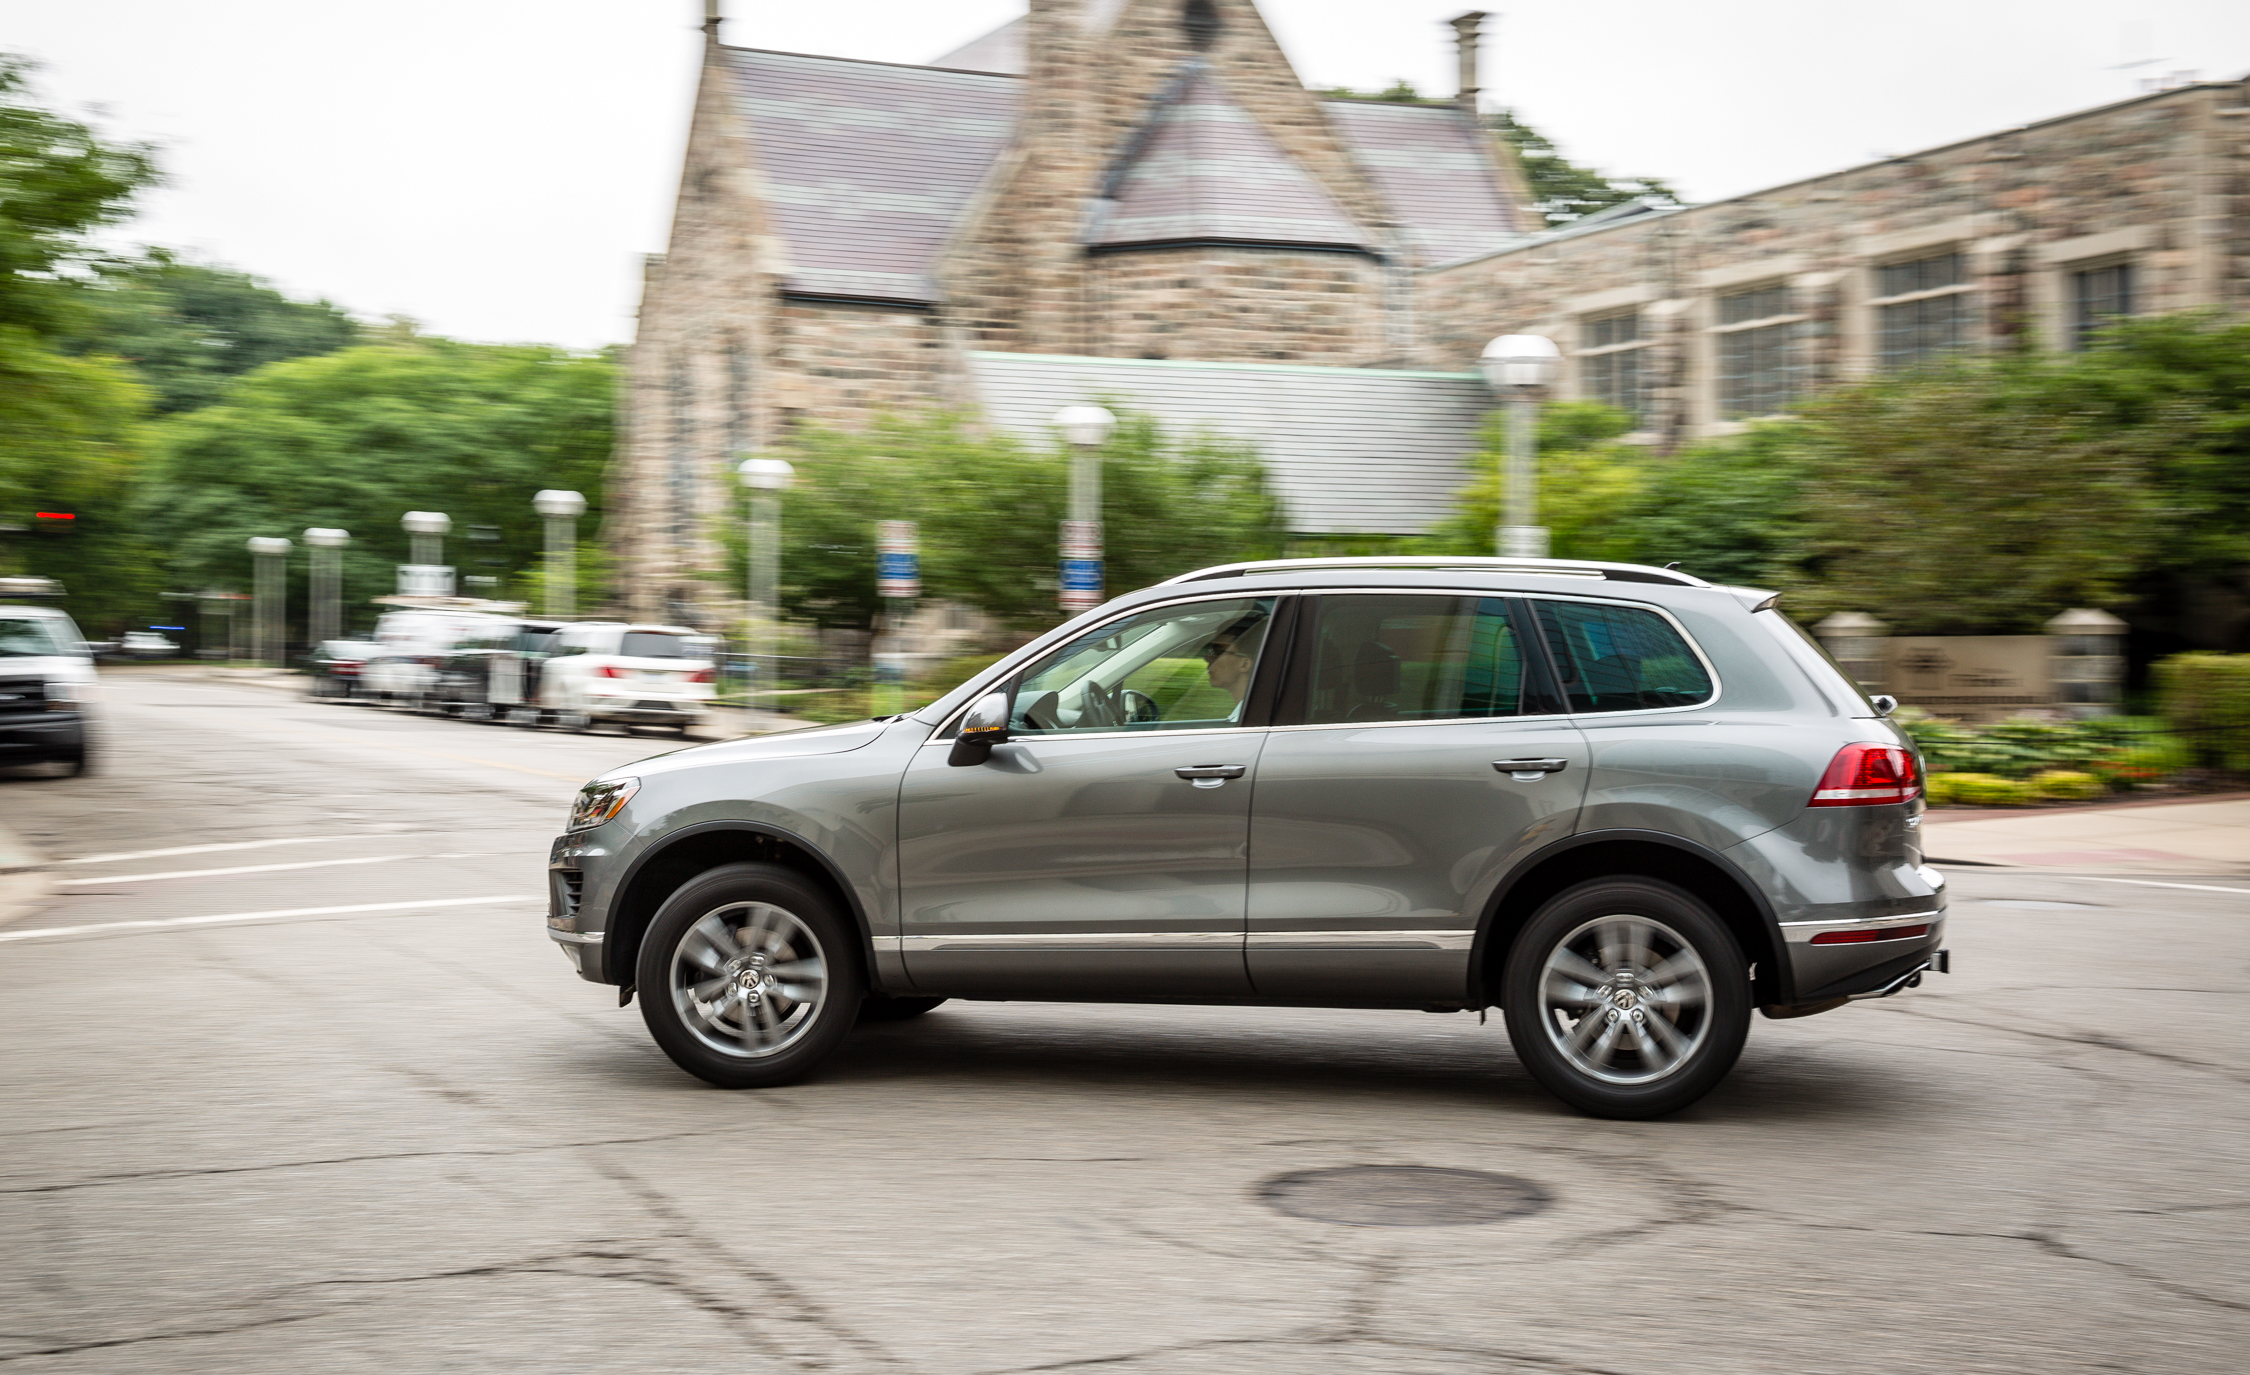 2016 Volkswagen Touareg Test Drive Preview (View 7 of 16)